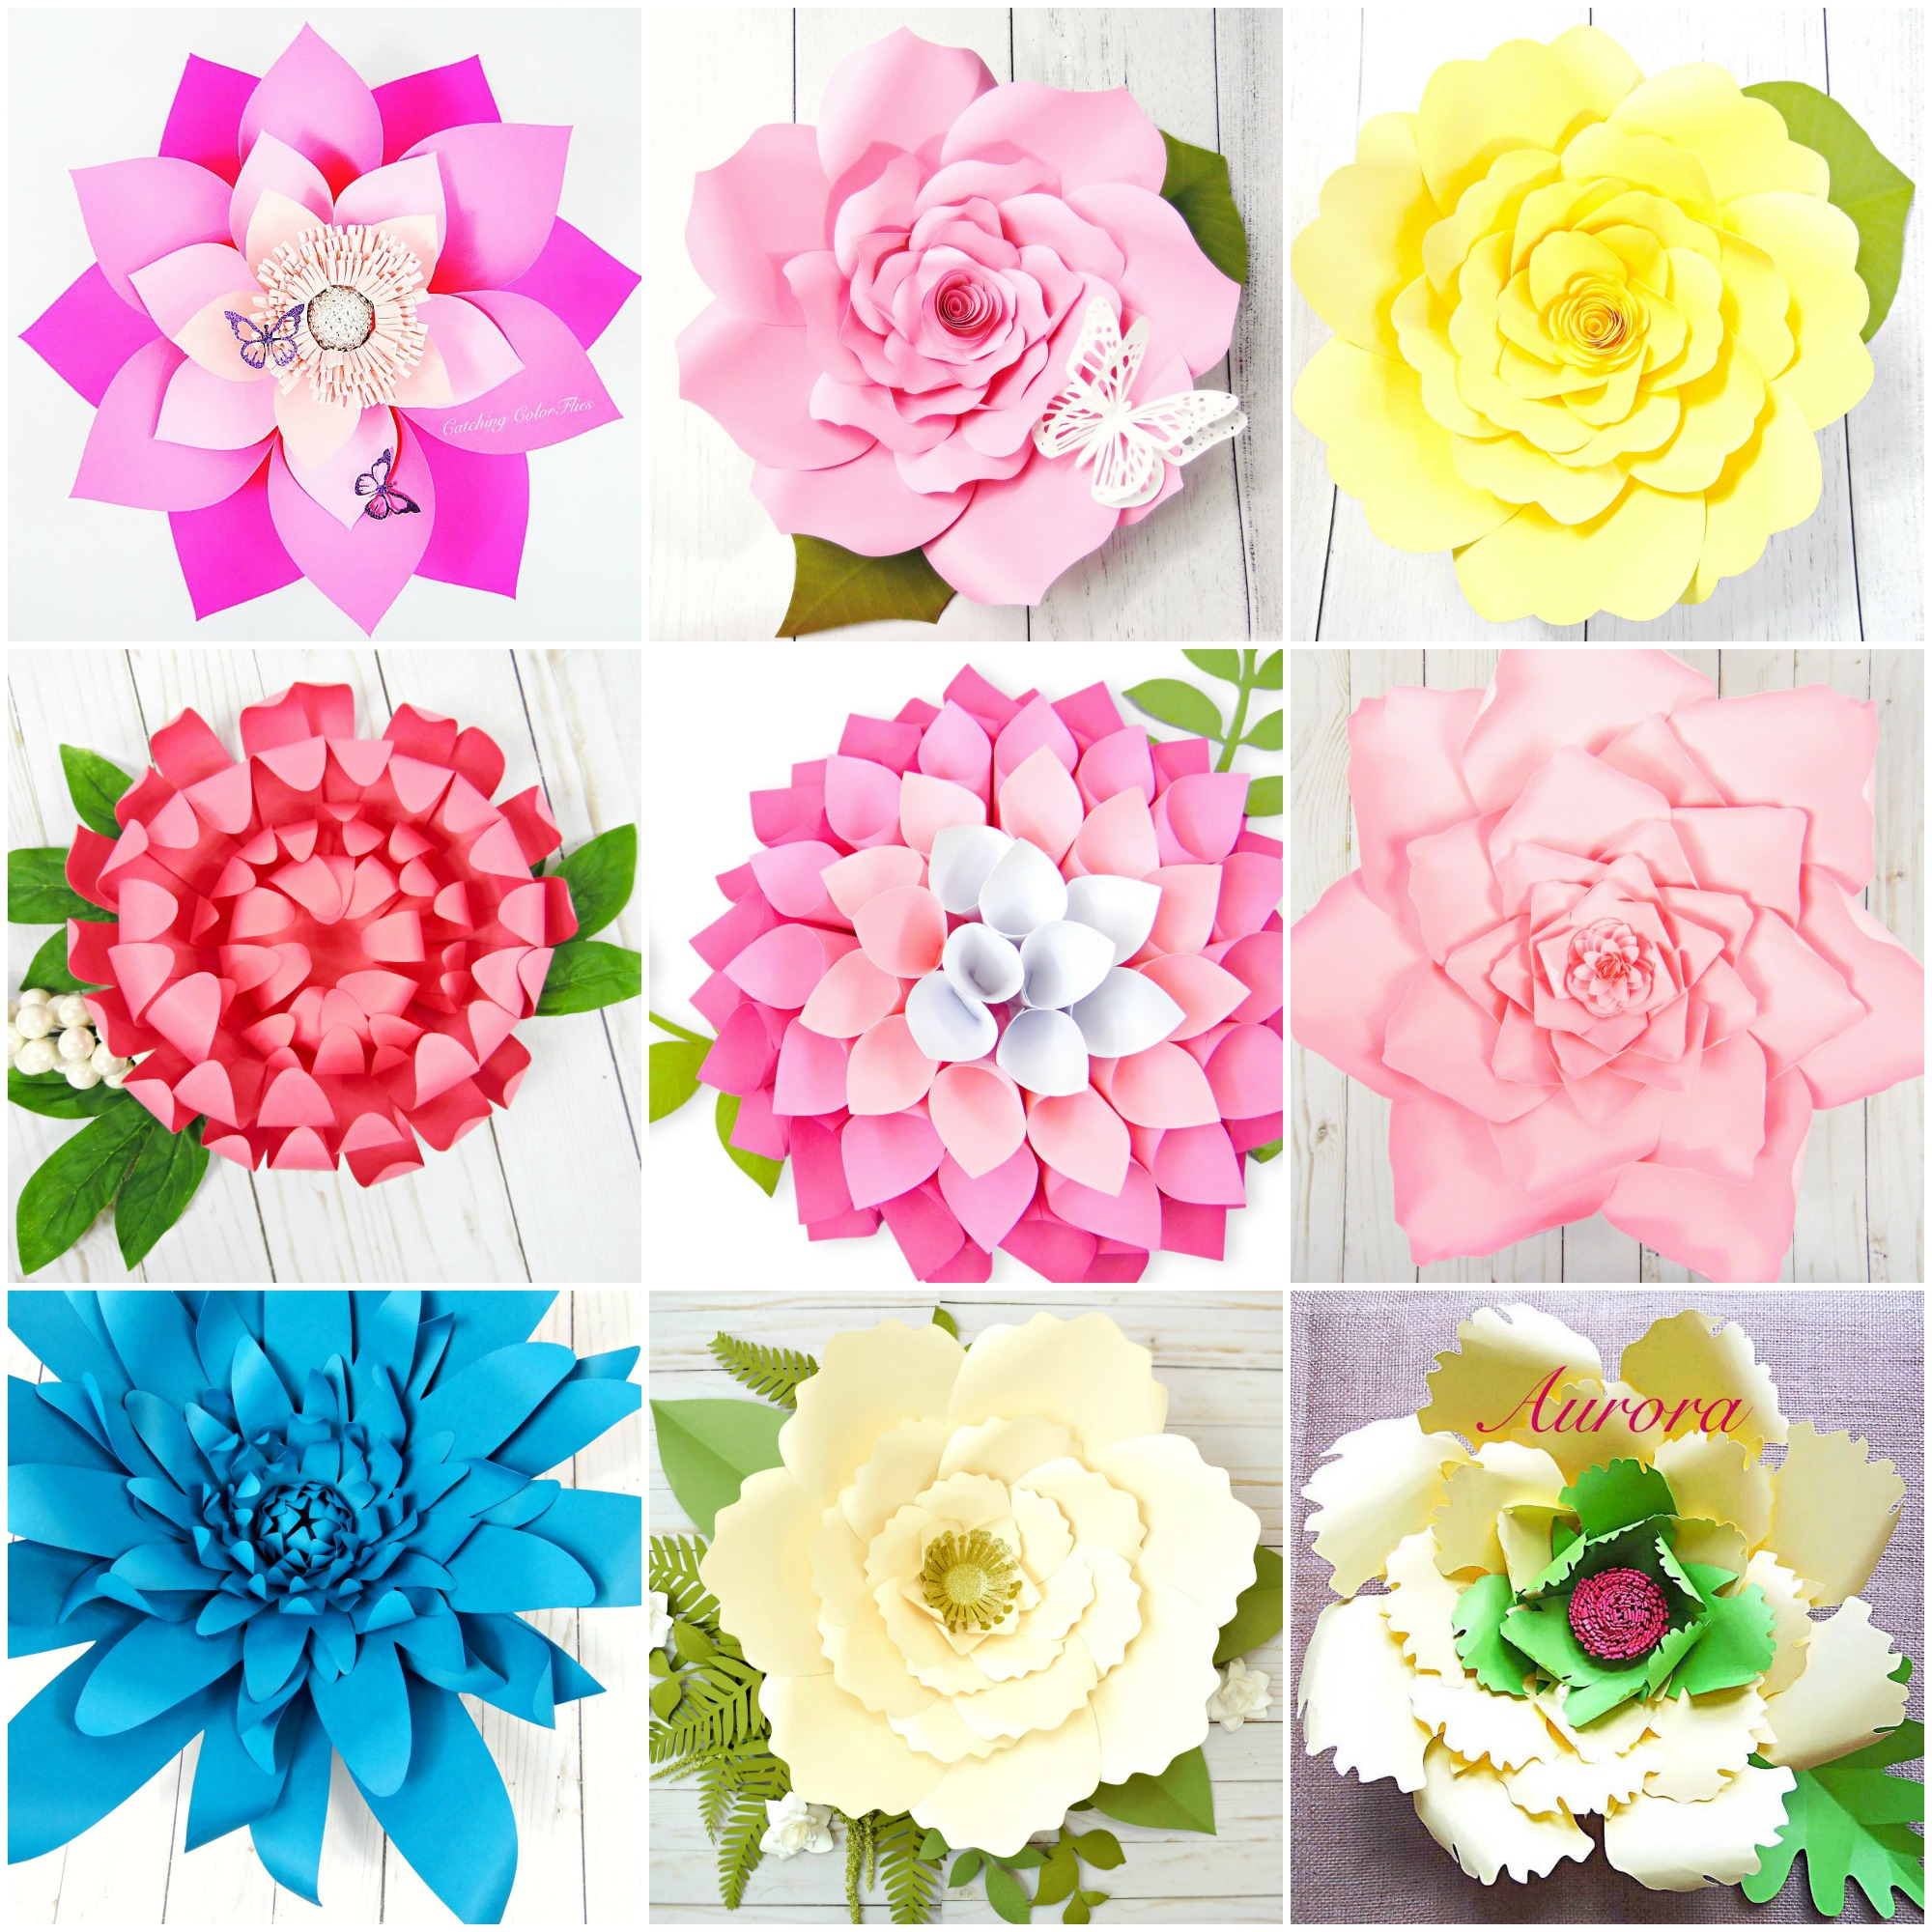 The Art Of Giant Paper Flowers